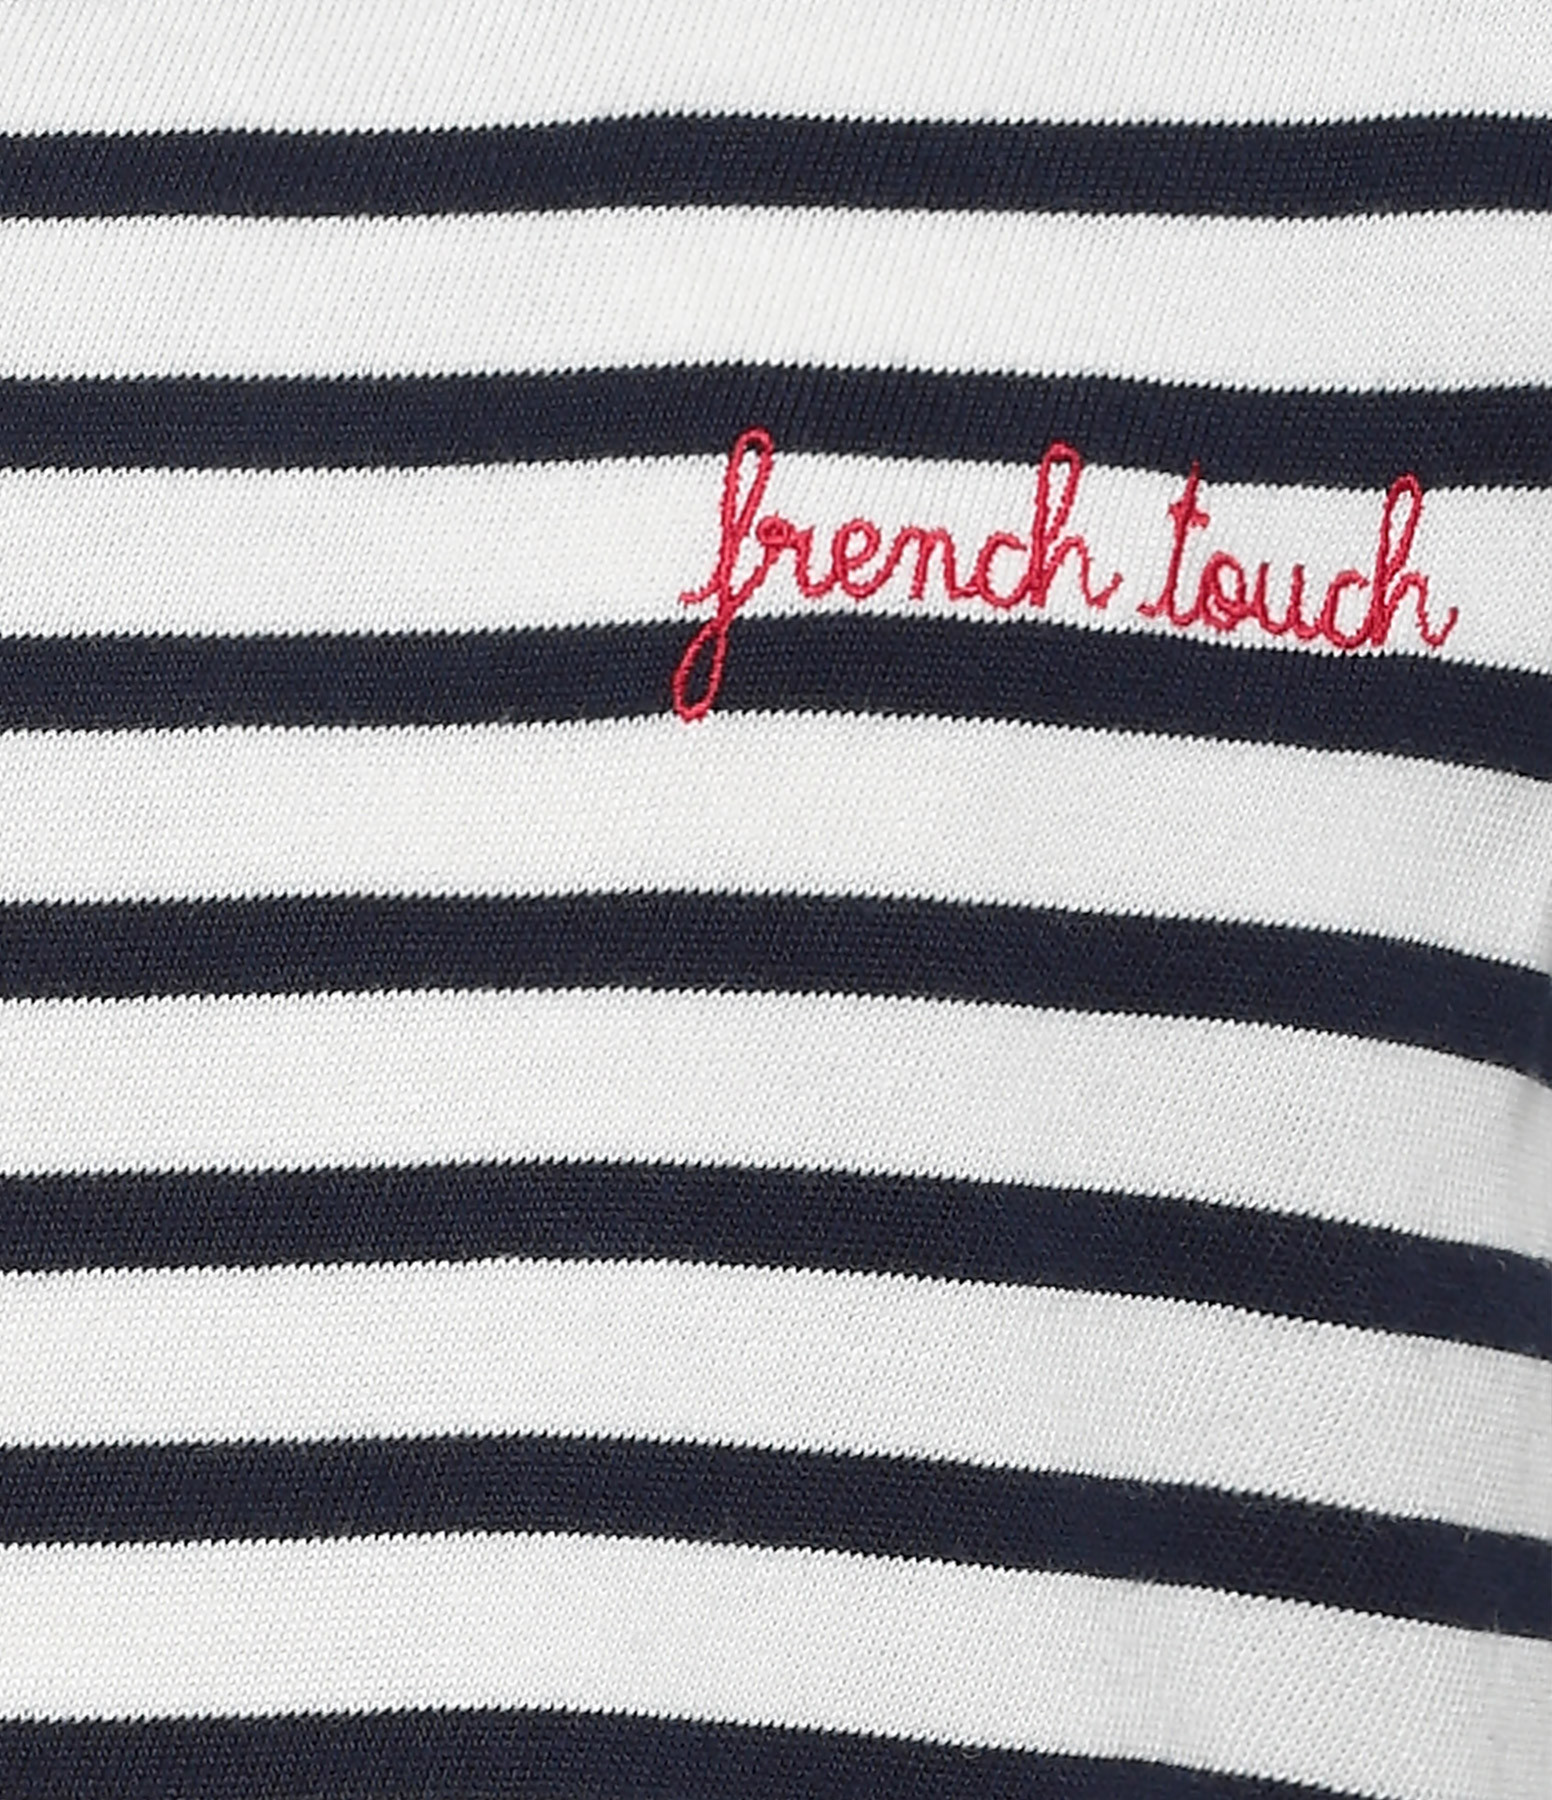 MAISON LABICHE - Tee-shirt French Touch Rayures Navy Ivoire